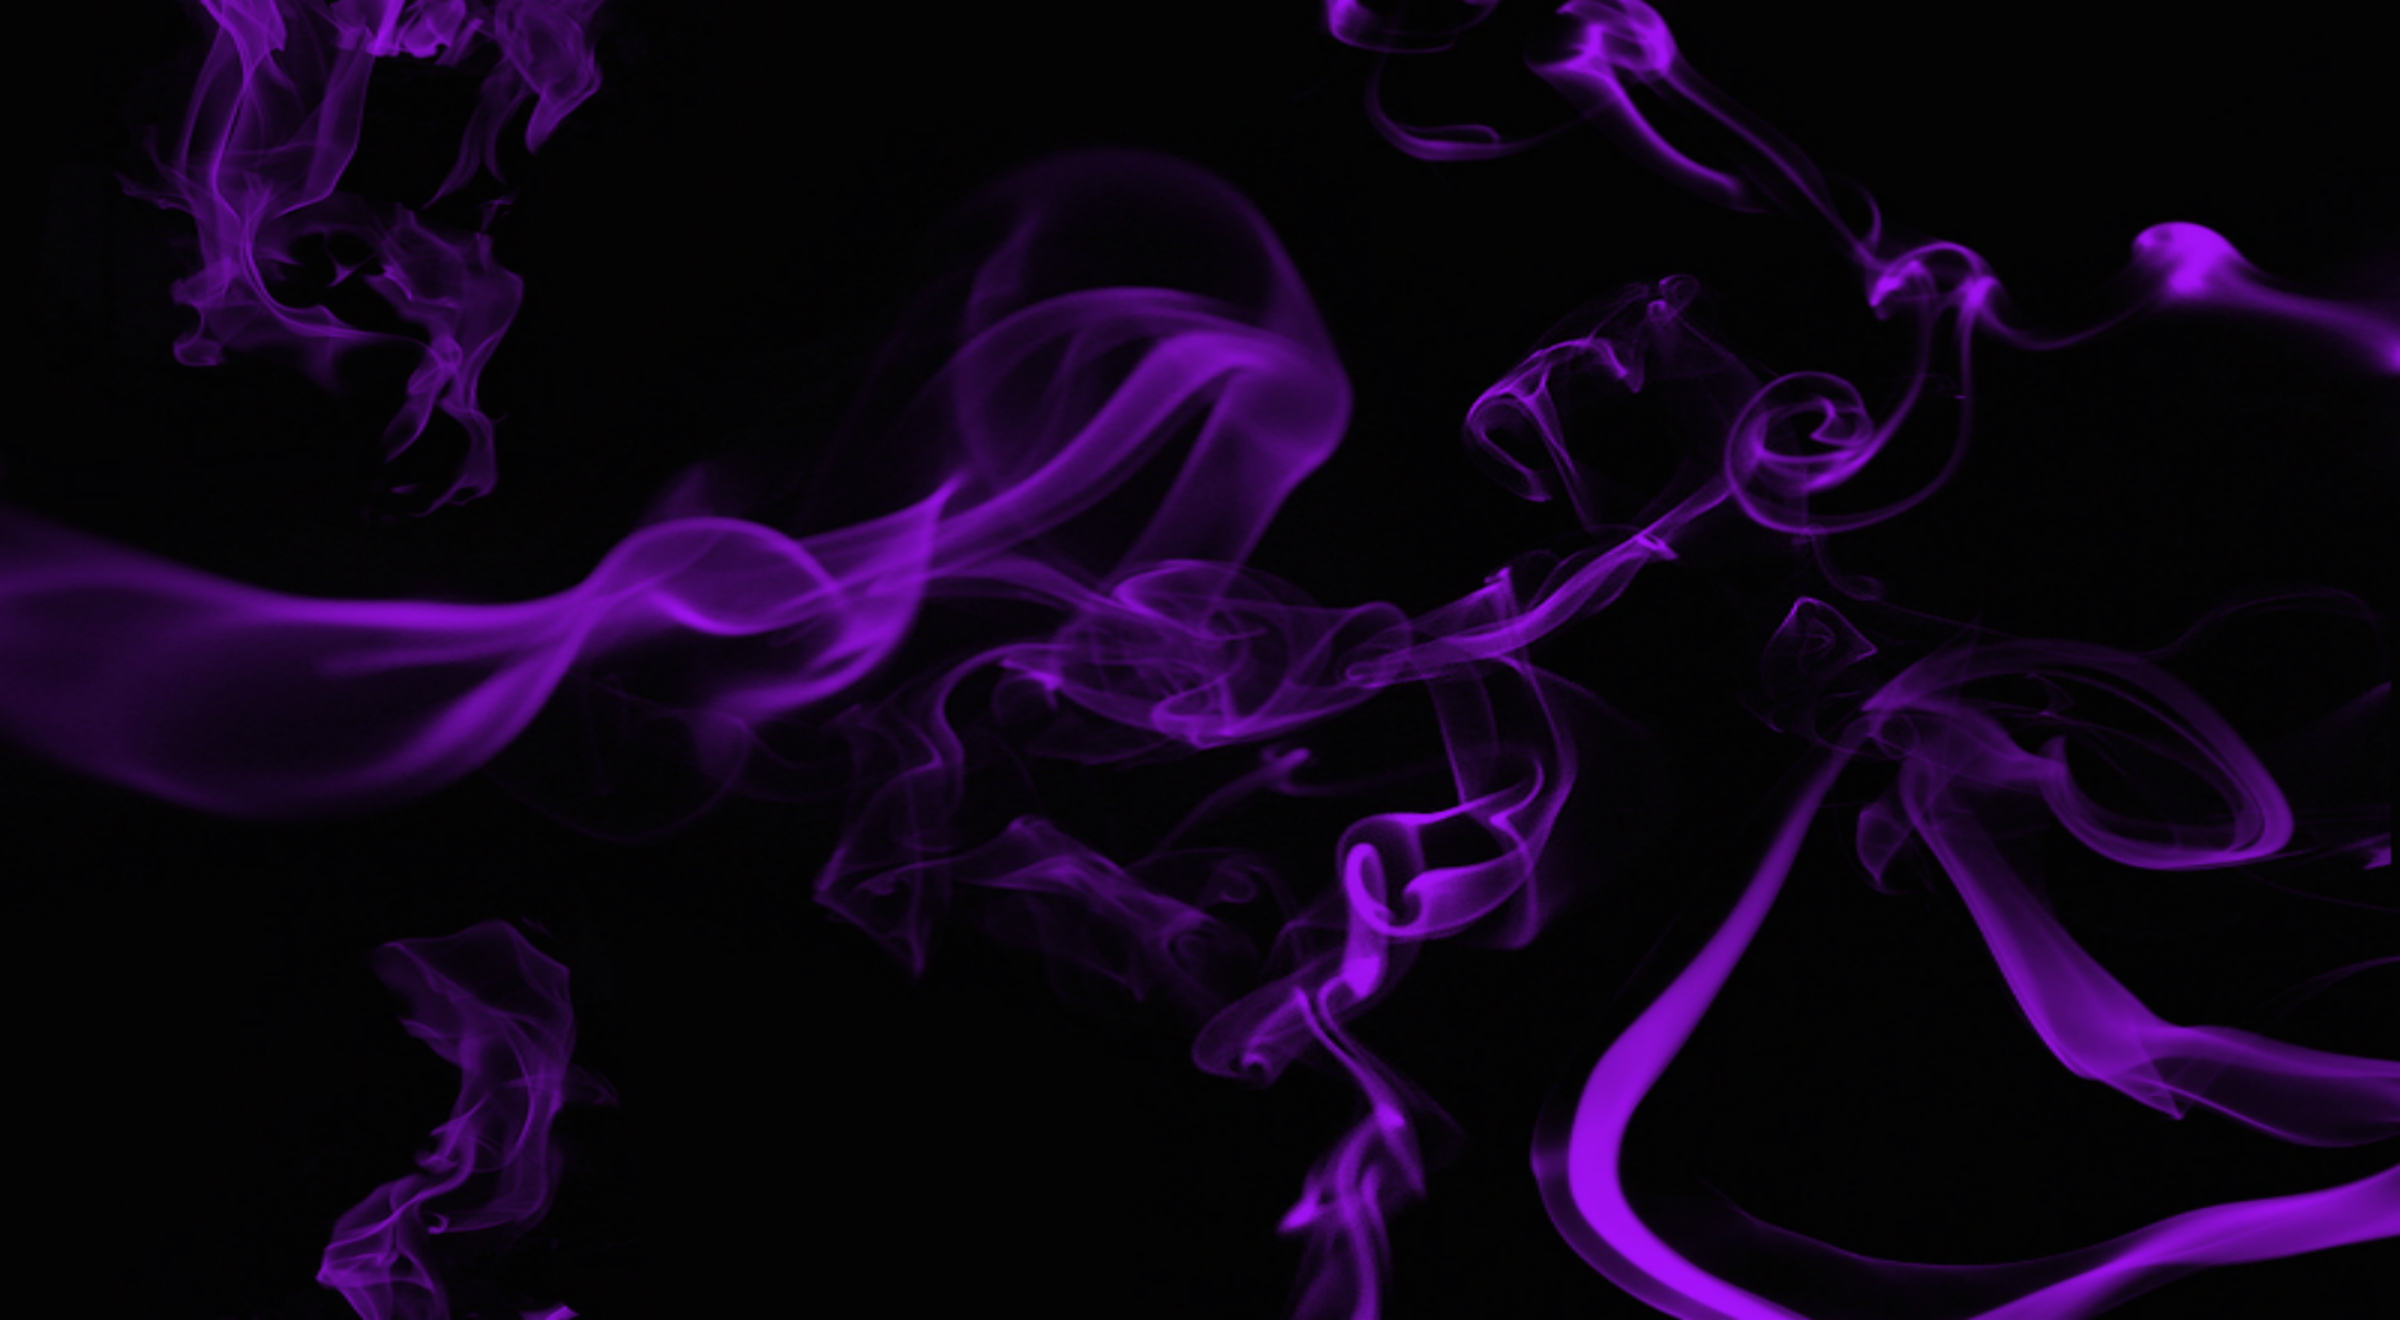 purple smoke Computer Wallpapers Desktop Backgrounds 2400x1320 ID 2400x1320